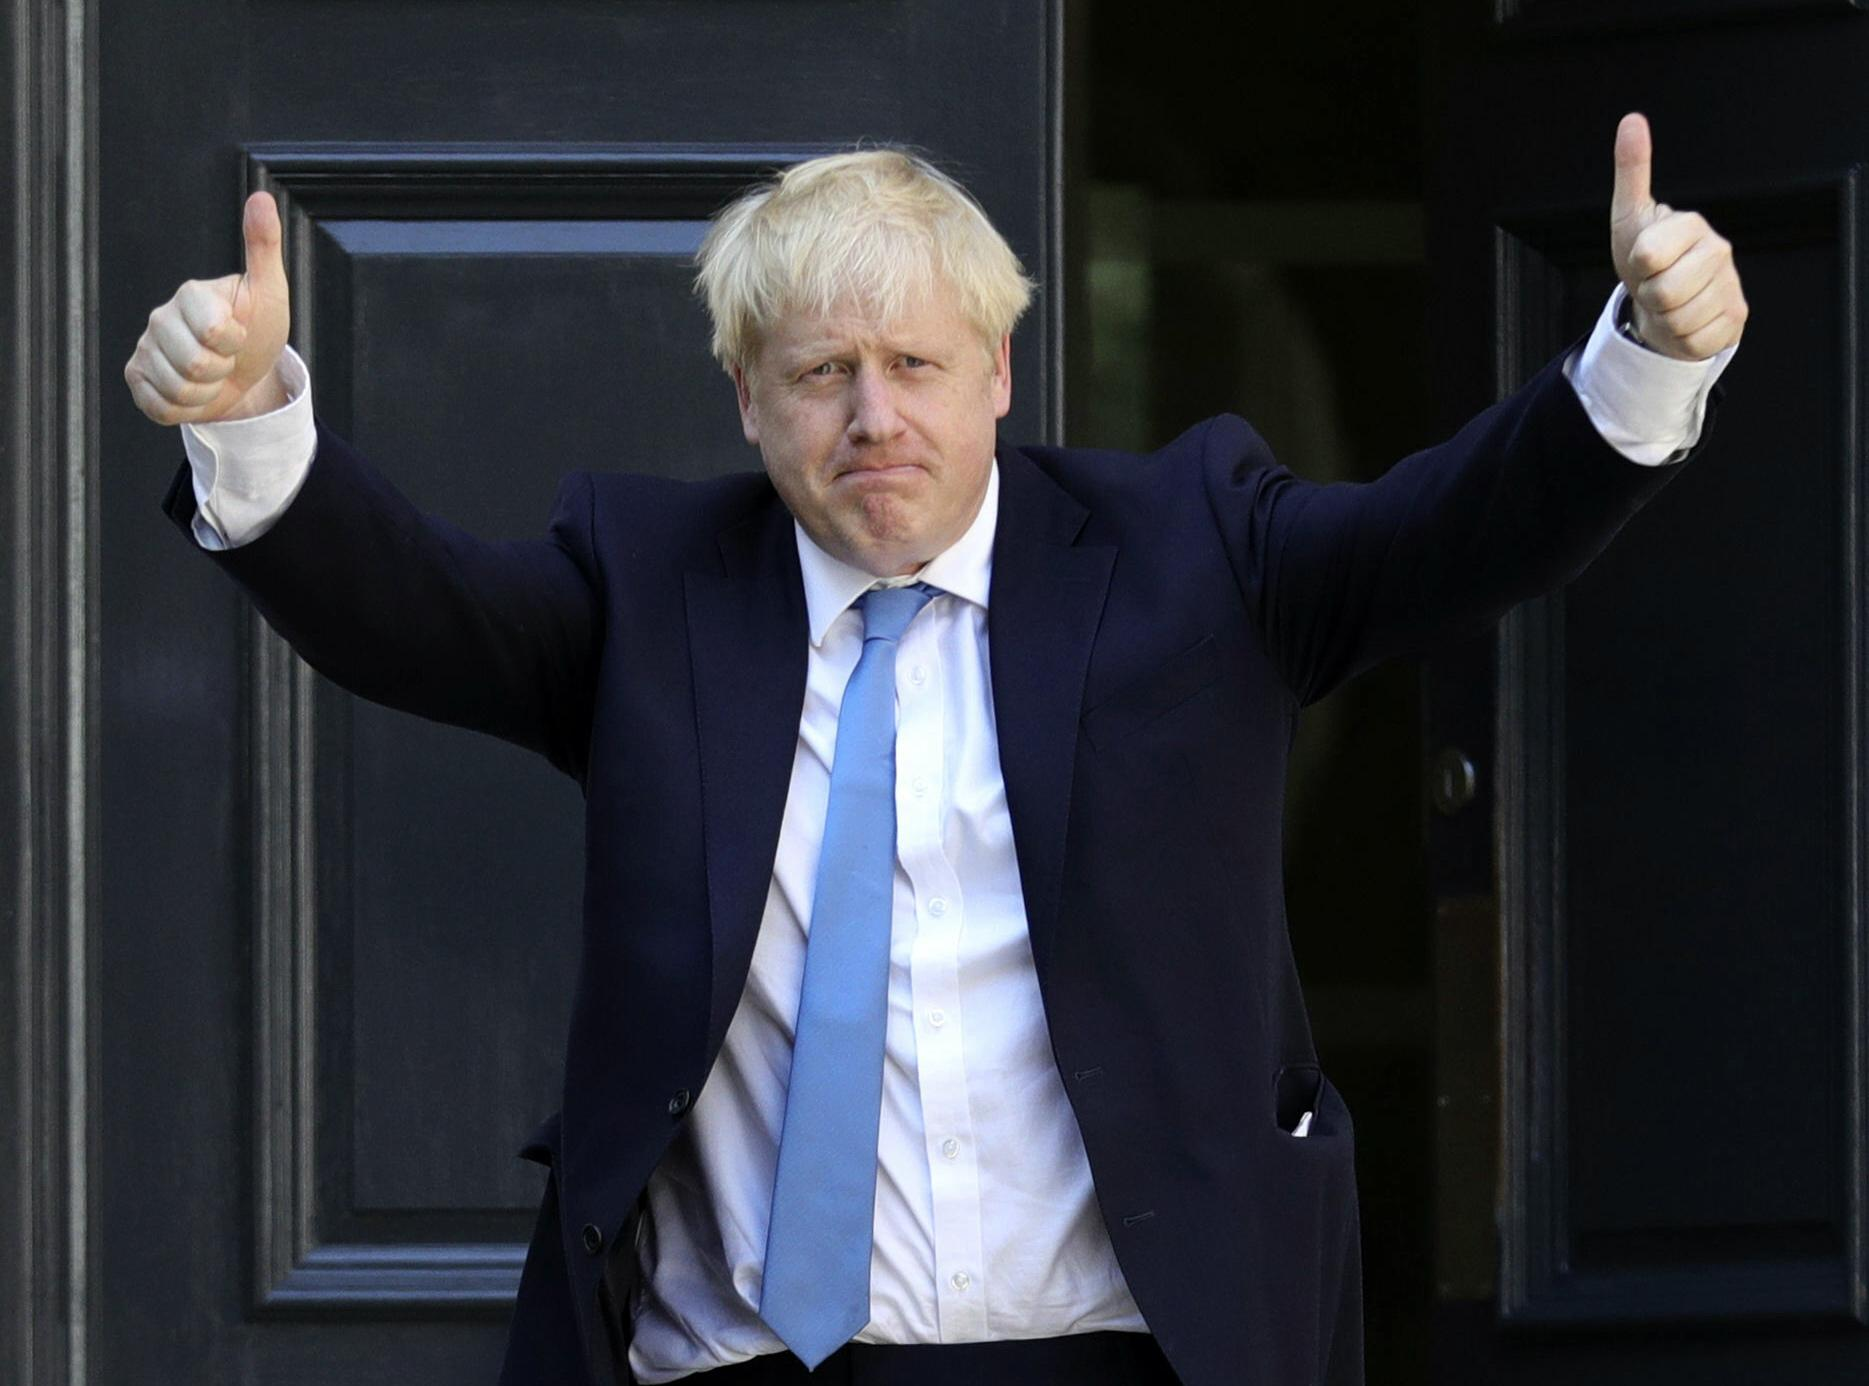 Britain finally has a new prime minister